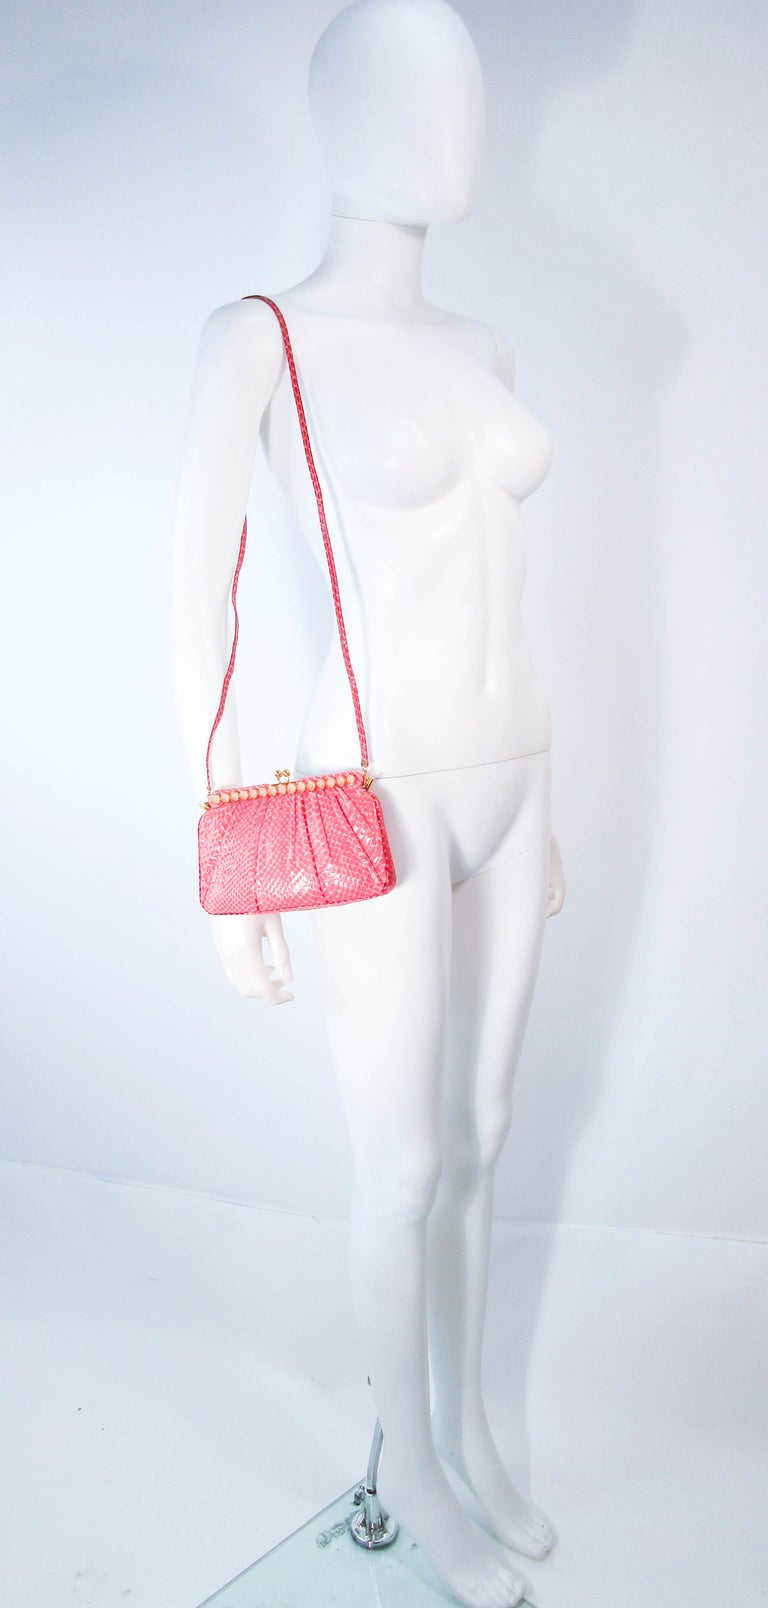 JUDITH LEIBER Pink Snakeskin Clutch w/ Optional Strap Mirror Coin Purse  For Sale 8